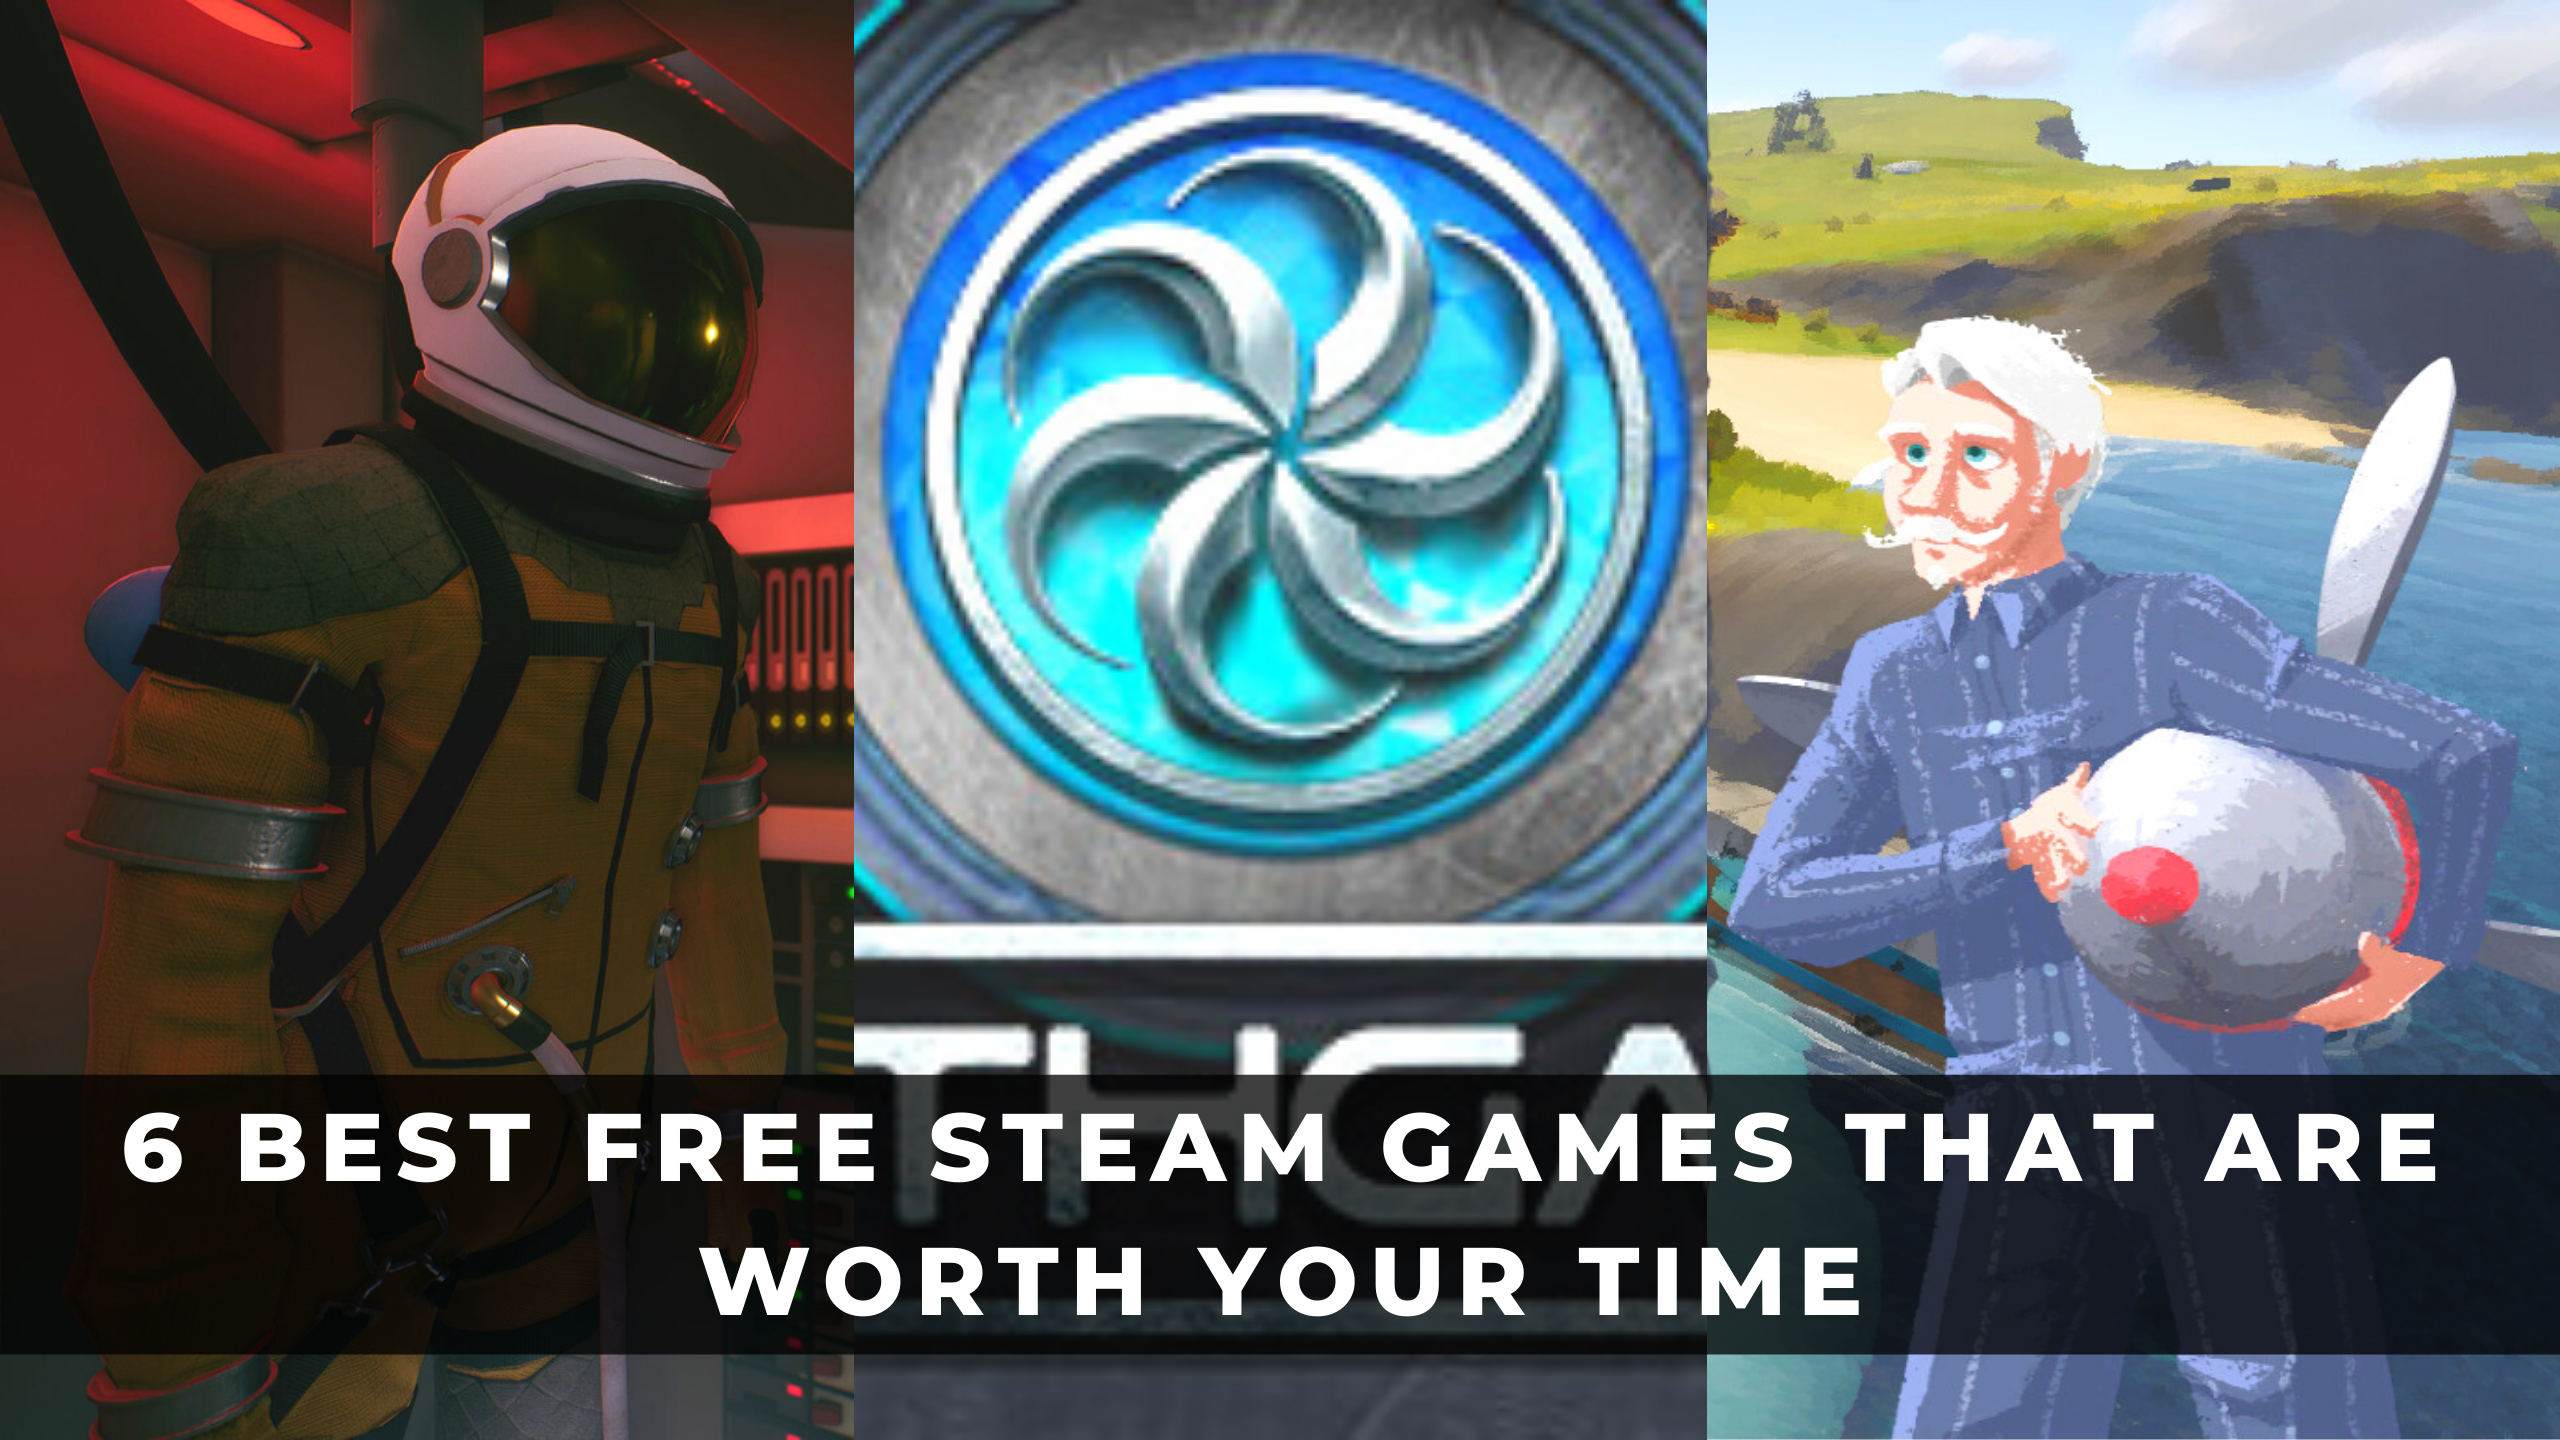 6 Free Games On Steam That Are Worth Your Time Keengamer Online Card Games Free Games In Game Currency